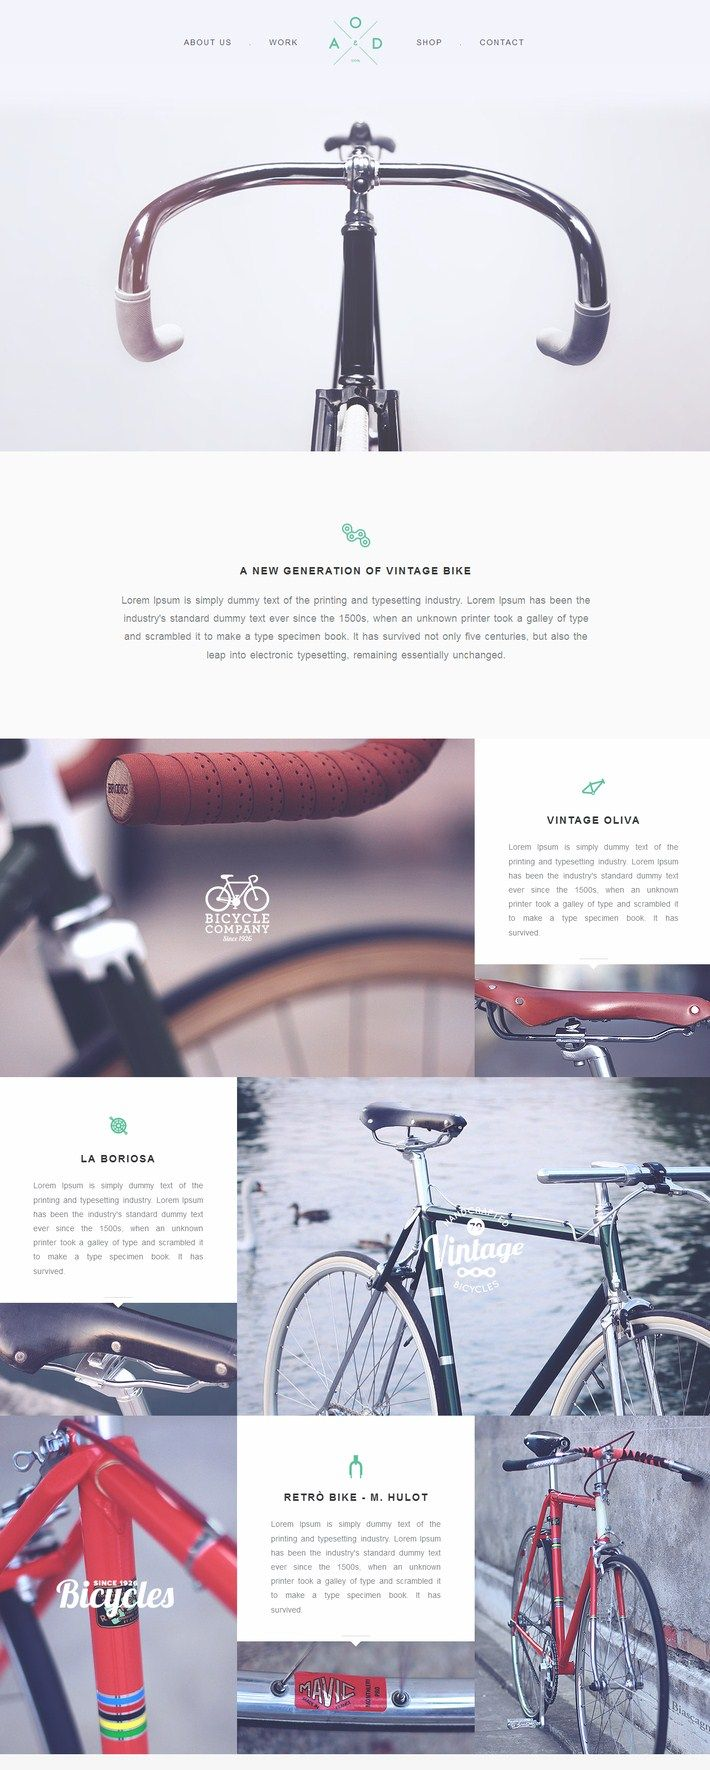 15 great website layout ideas for inspiration - Great Website Design Ideas